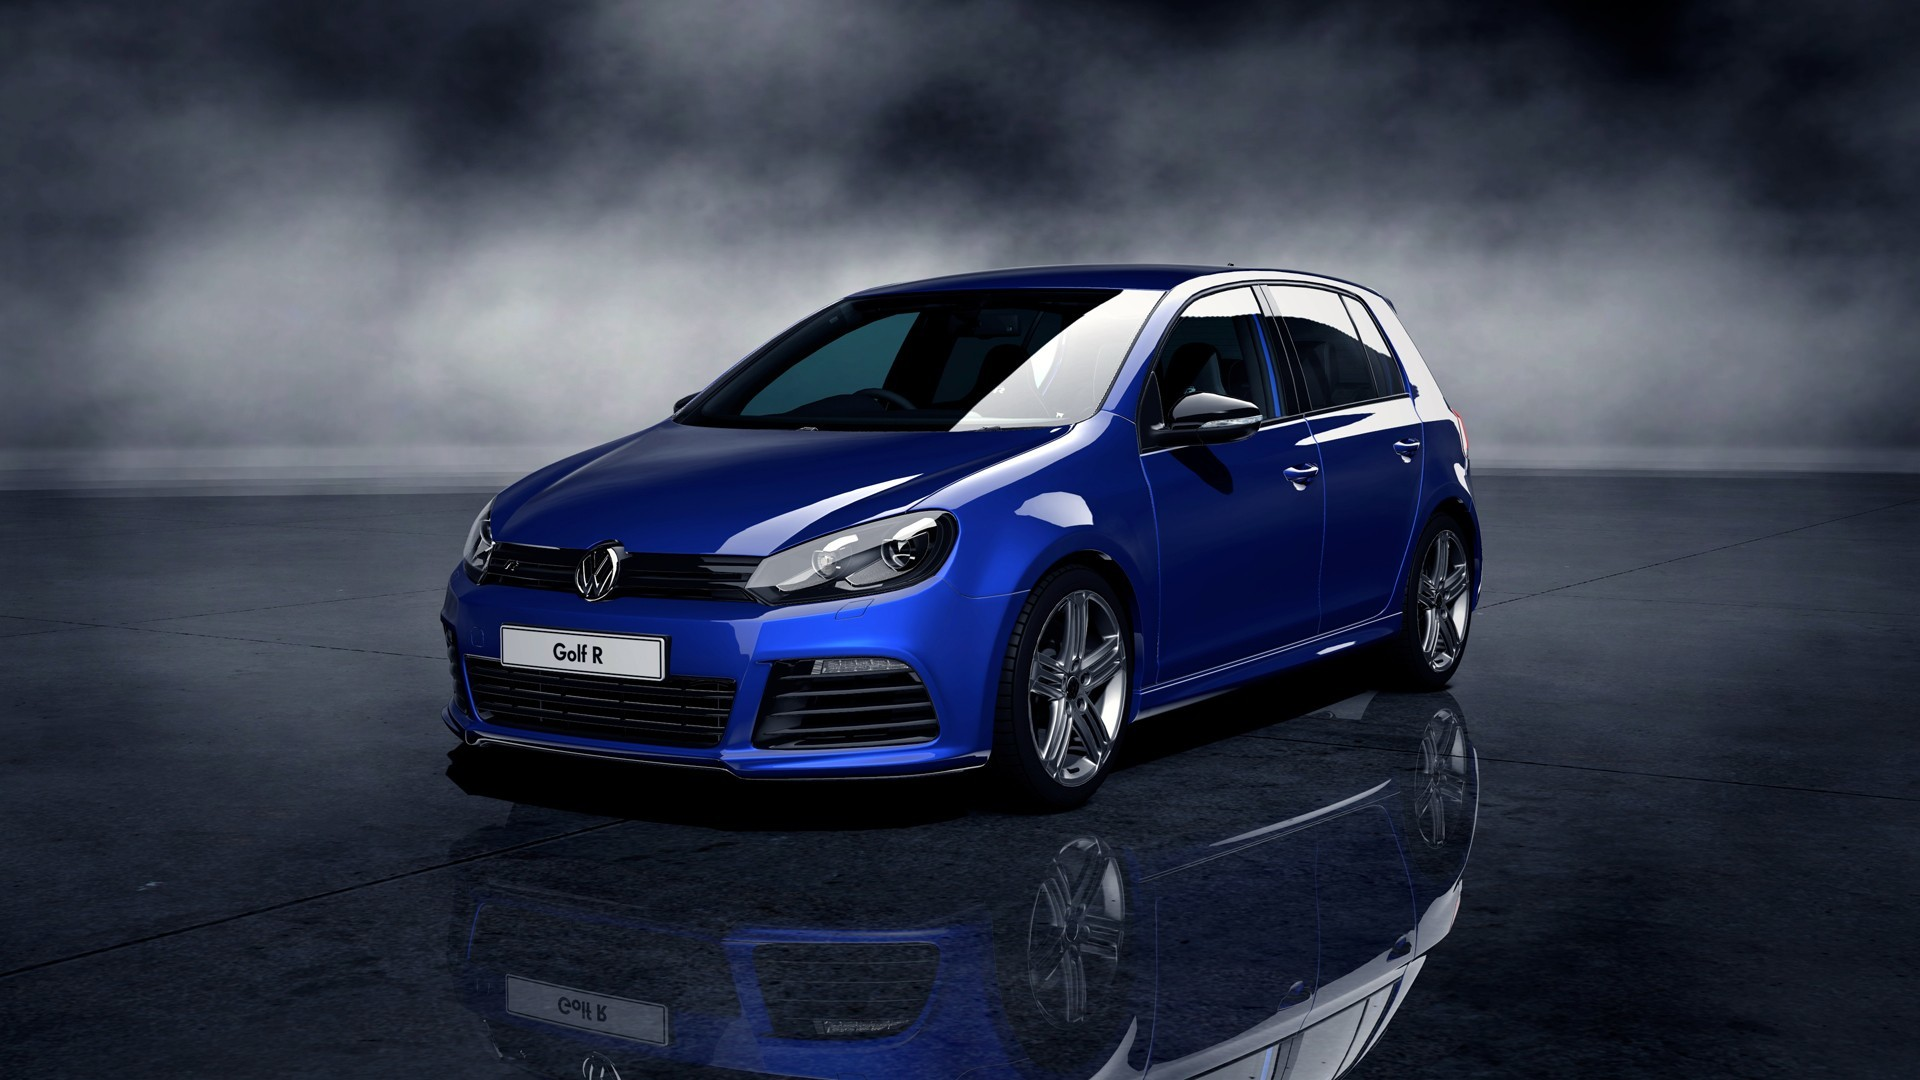 Res: 1920x1080, volkswagen golf r wallpaper stock images m z q w